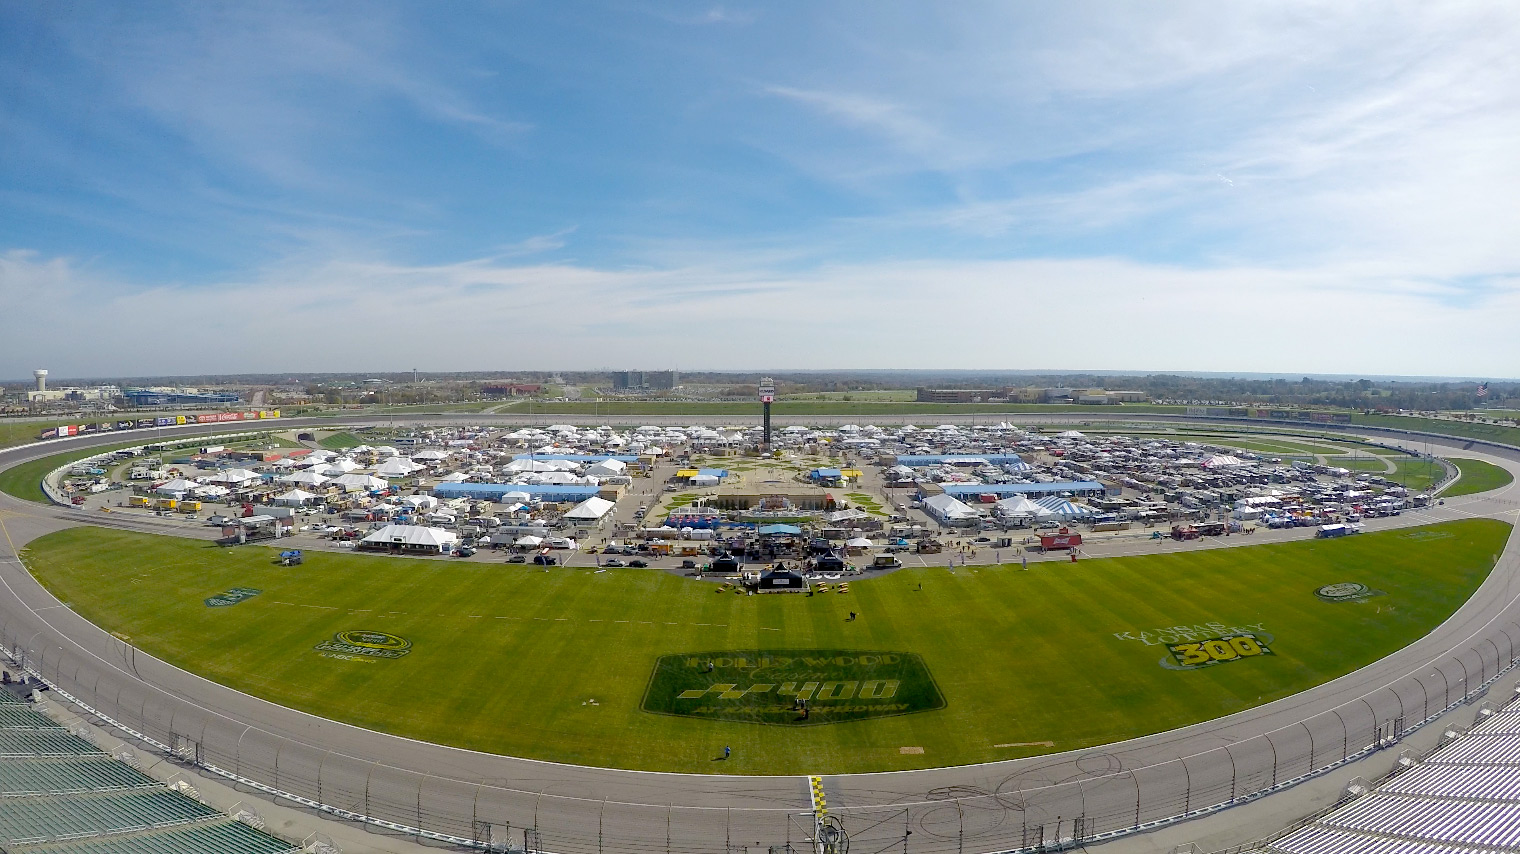 The American Royal barbecue competition at Kansas Speedway